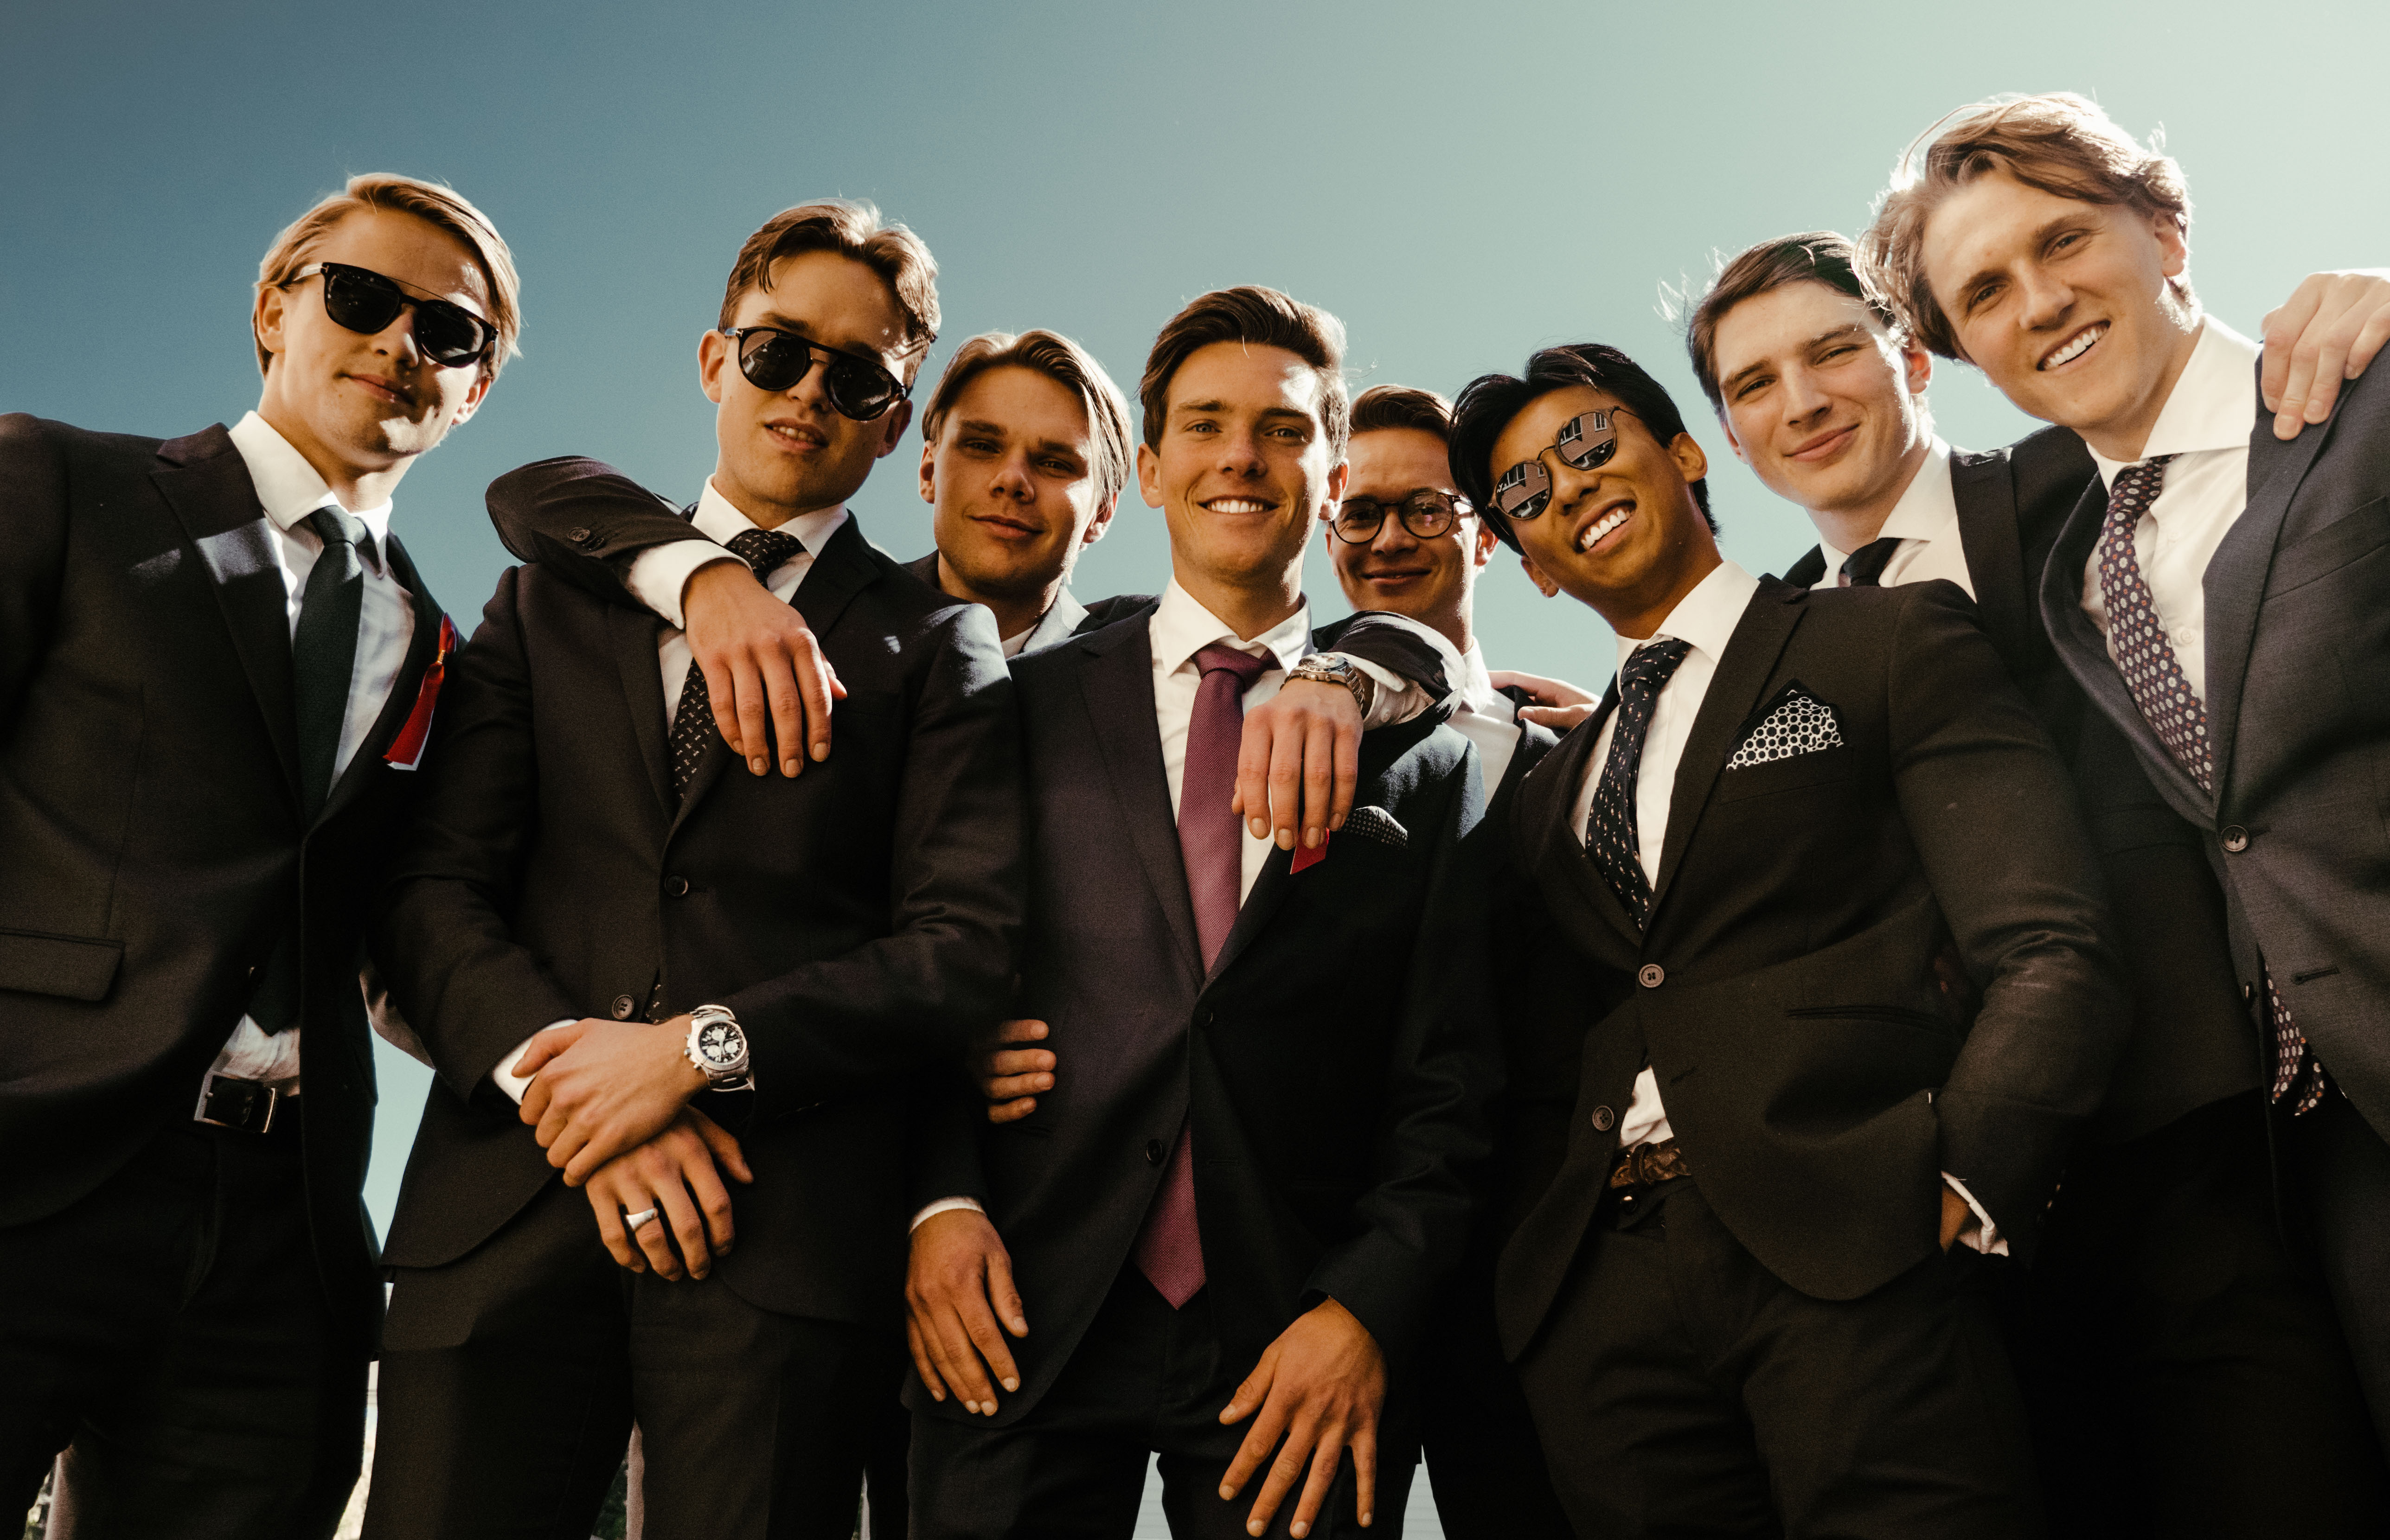 17. Mai 2019 - Group of guys in suits